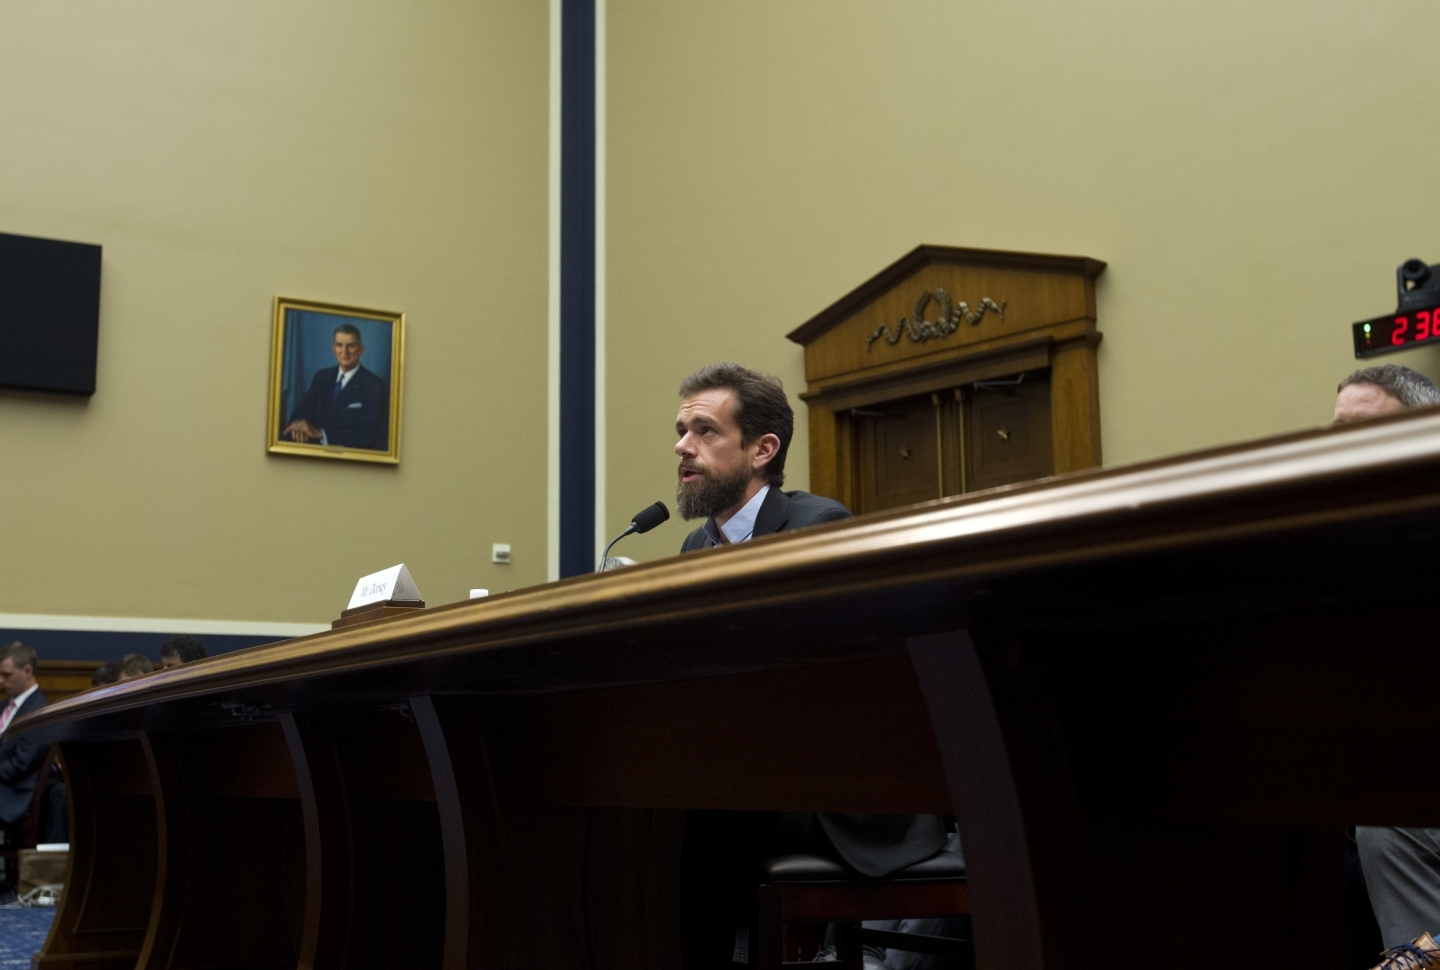 Twitter CEO Jack Dorsey testifies before the House Energy and Commerce Committee on Capitol Hill, on September 5, 2018, in Washington. (AP Photo/Jose Luis Magana)